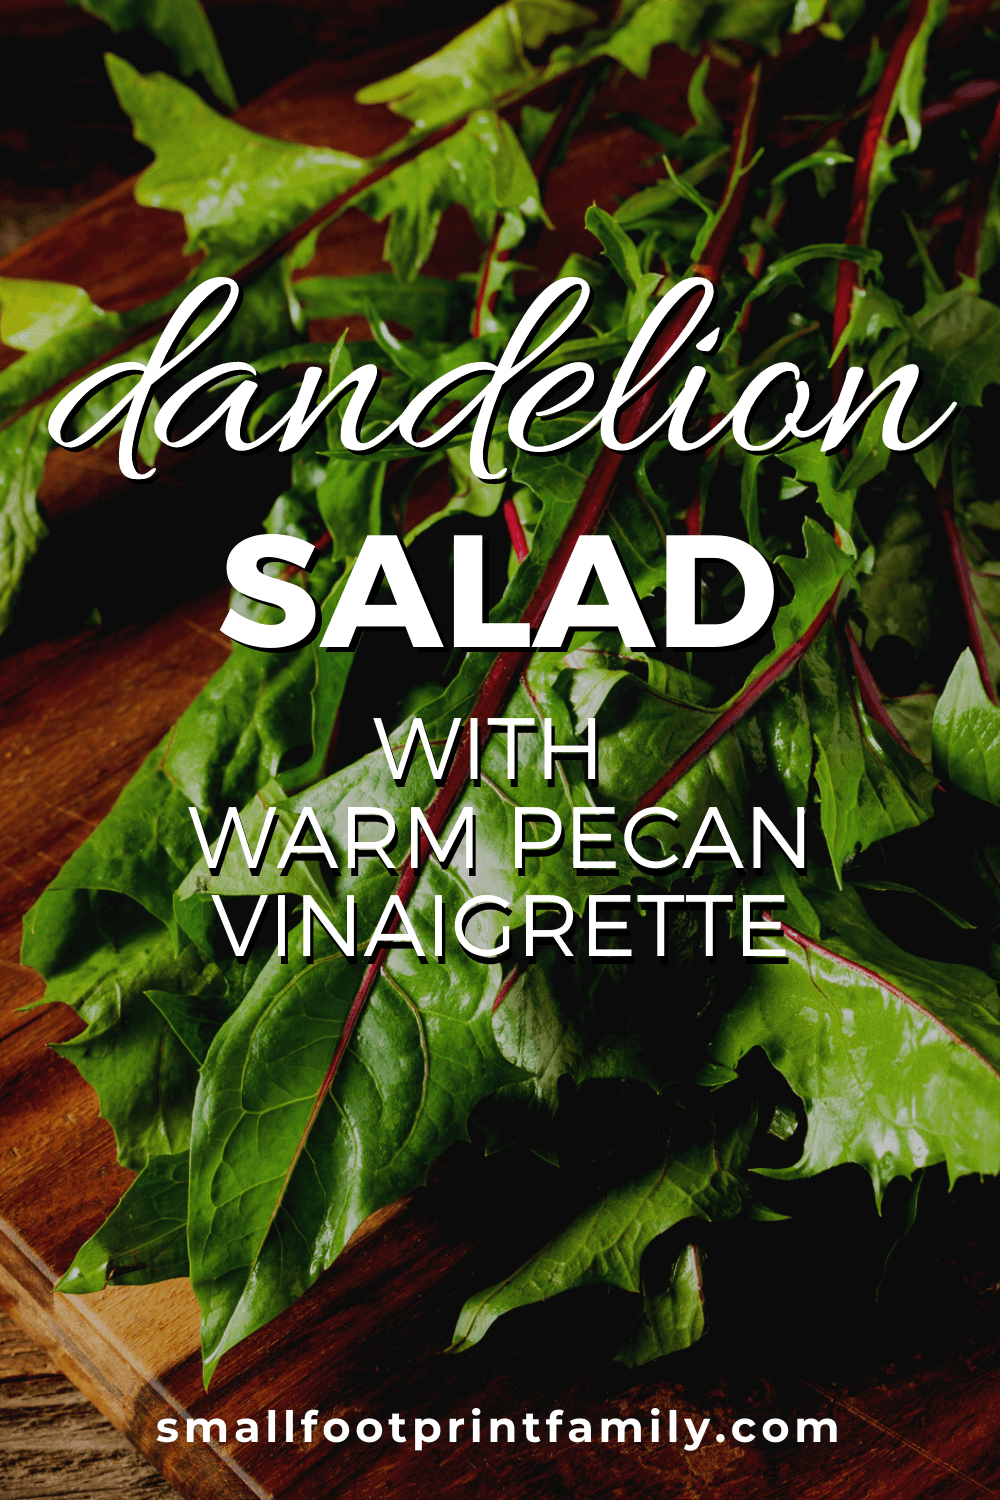 This elegant and delicious way to serve fresh dandelion greens, will help you get the most out of them while they are in season.#vegan #vegetarian #foraging #organicgarden #homestead #paleo #recipe #dandelion #salad